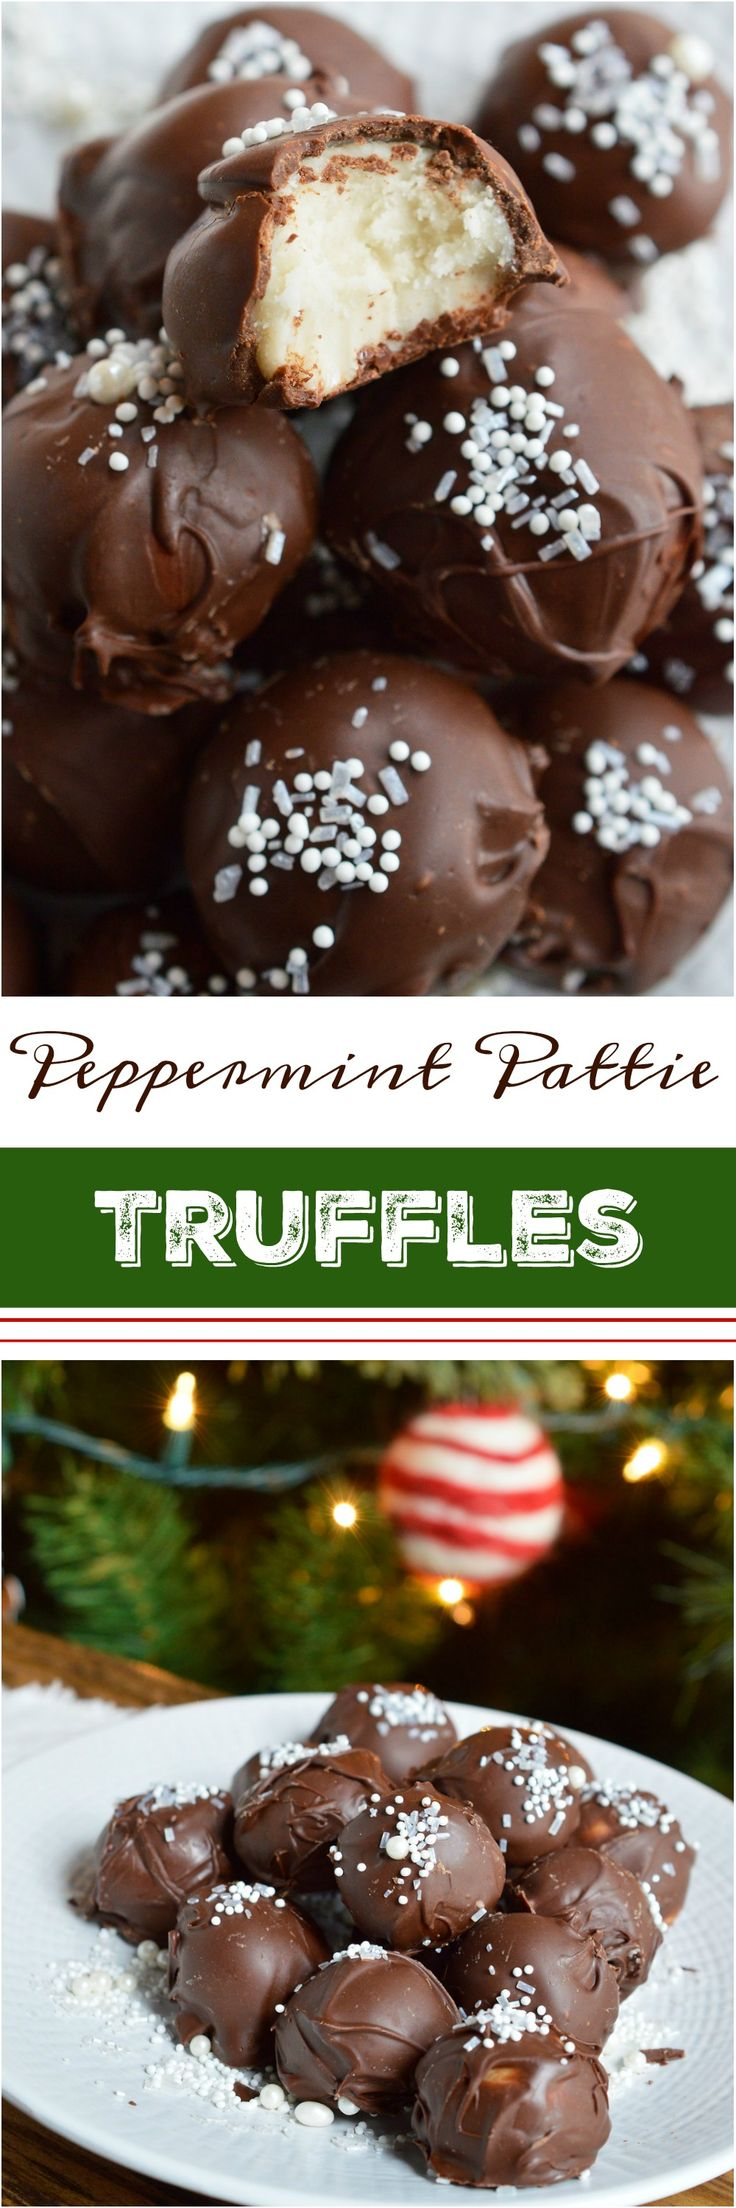 It's time for holiday treat platters and homemade gifts. These No-Bake Peppermint Pattie Chocolate Truffles will be the star of any Christmas dessert tray! Cool peppermint filling is shaped into balls and coated with chocolate then topped with sprinkles. #HolidayDelight #IDelight #ad